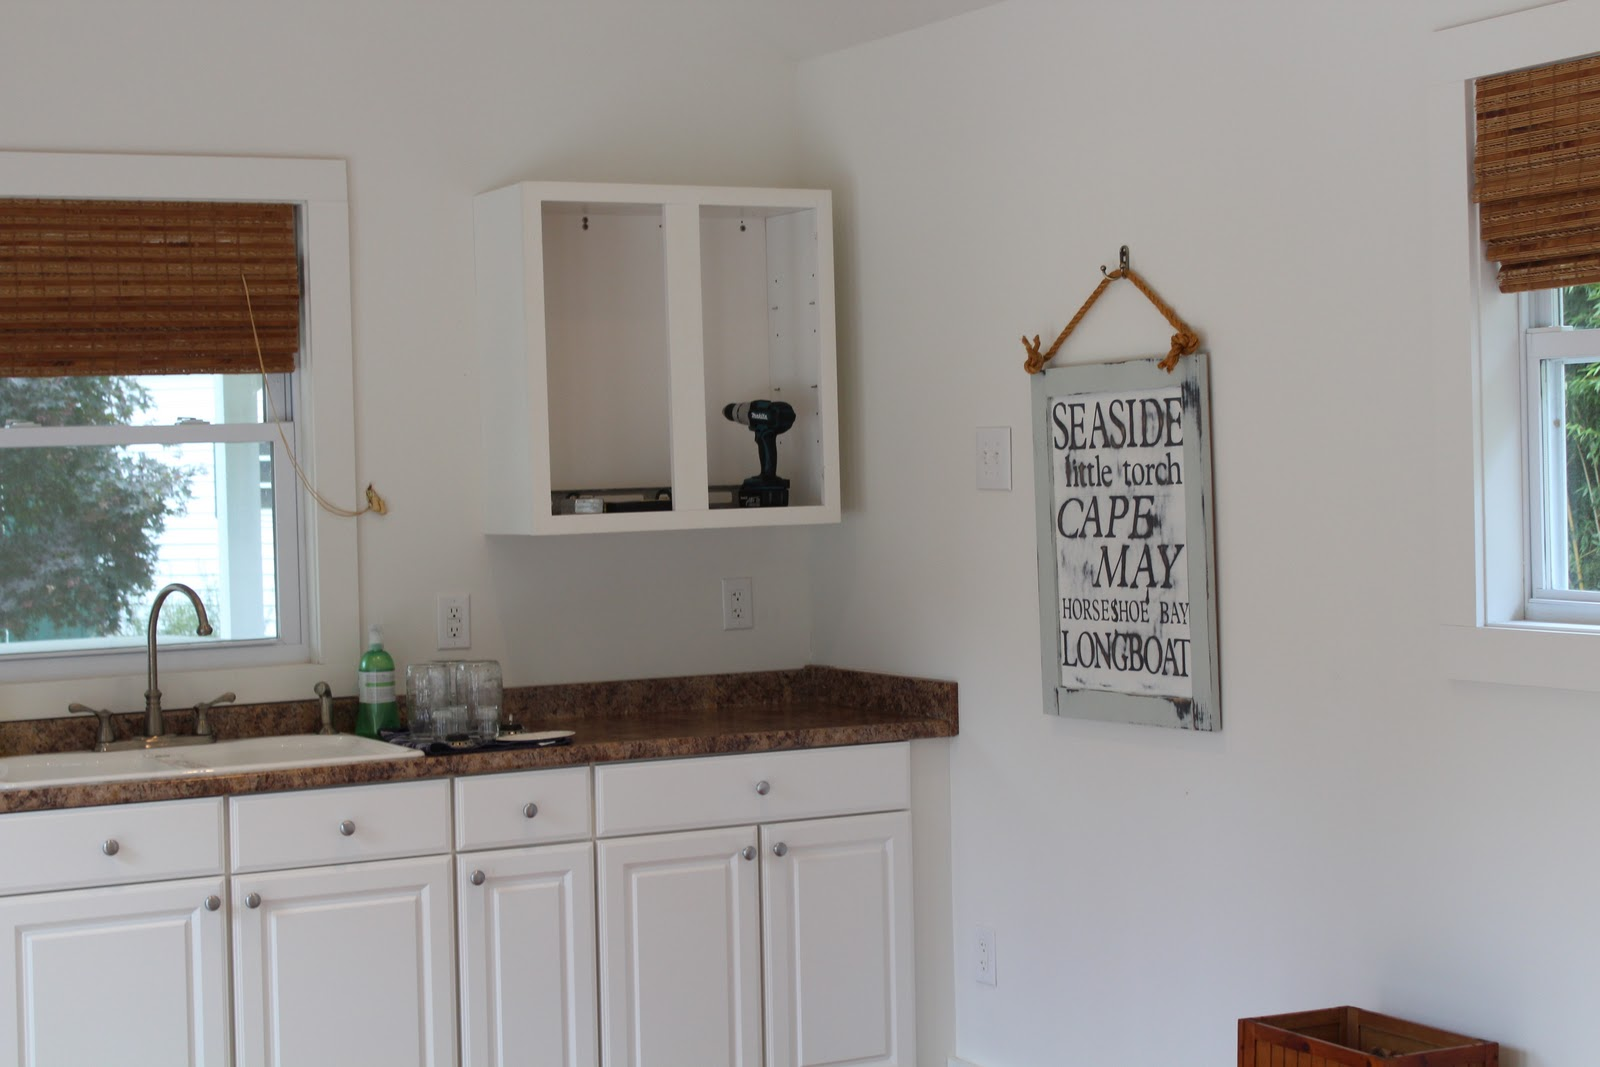 Pine tree home weekend projects mirror cabinet and caulk for Caulking around kitchen cabinets